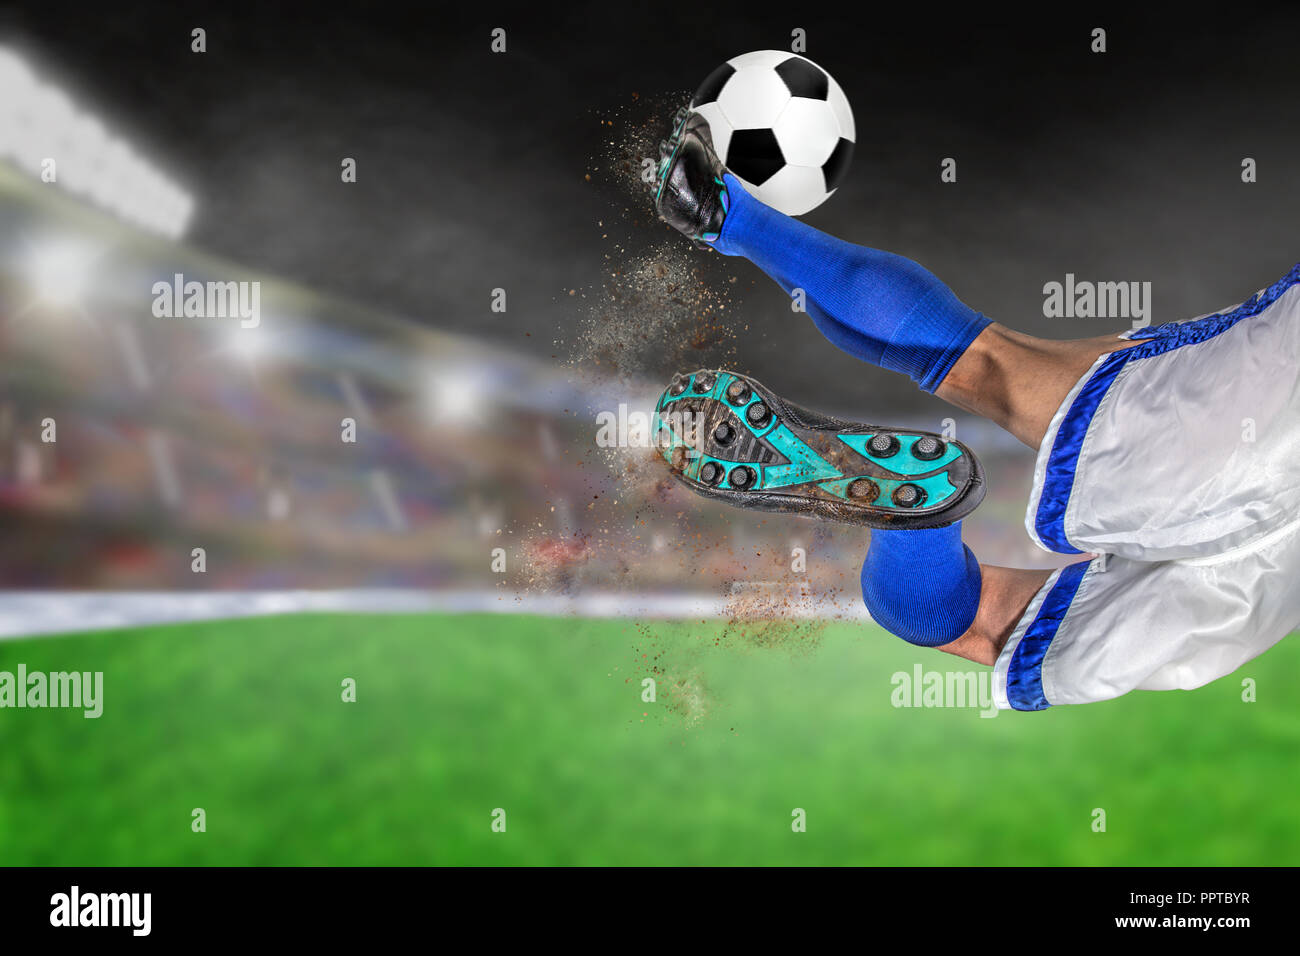 Soccer player with spectacular scissor kick of football in brightly lit outdoor stadium. Focus on foreground and soccer ball with shallow depth of fie - Stock Image